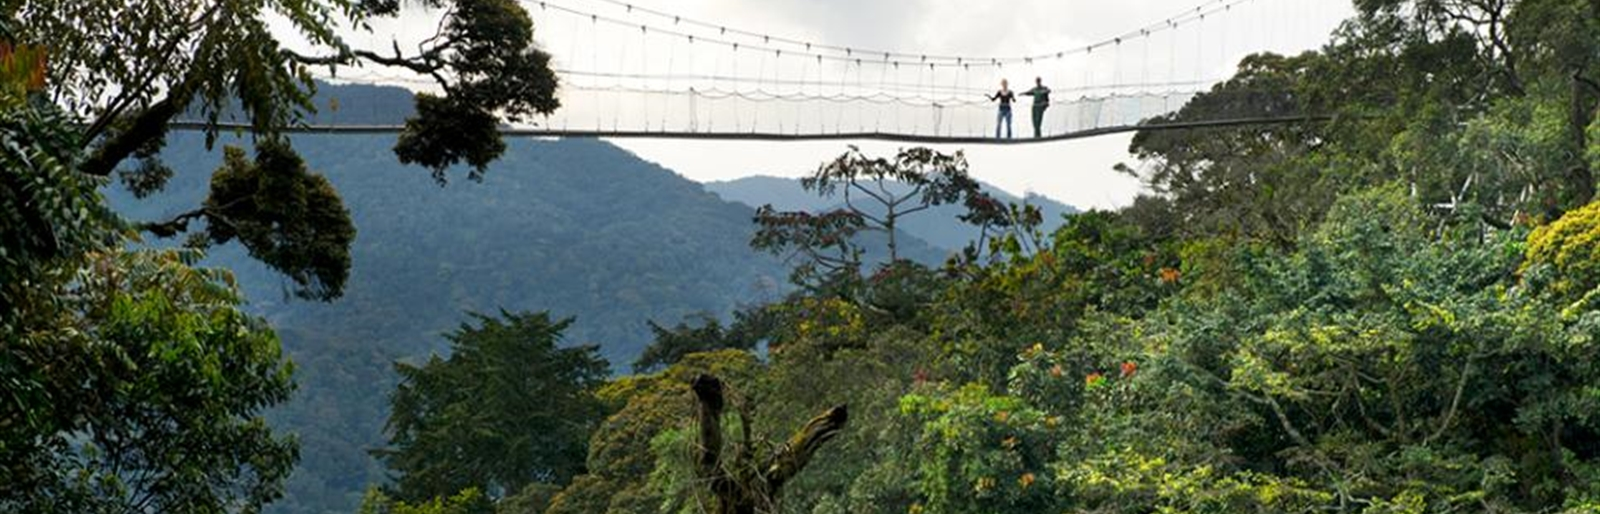 Canopy Walk in Nyungwe Forest National Park Rwanda